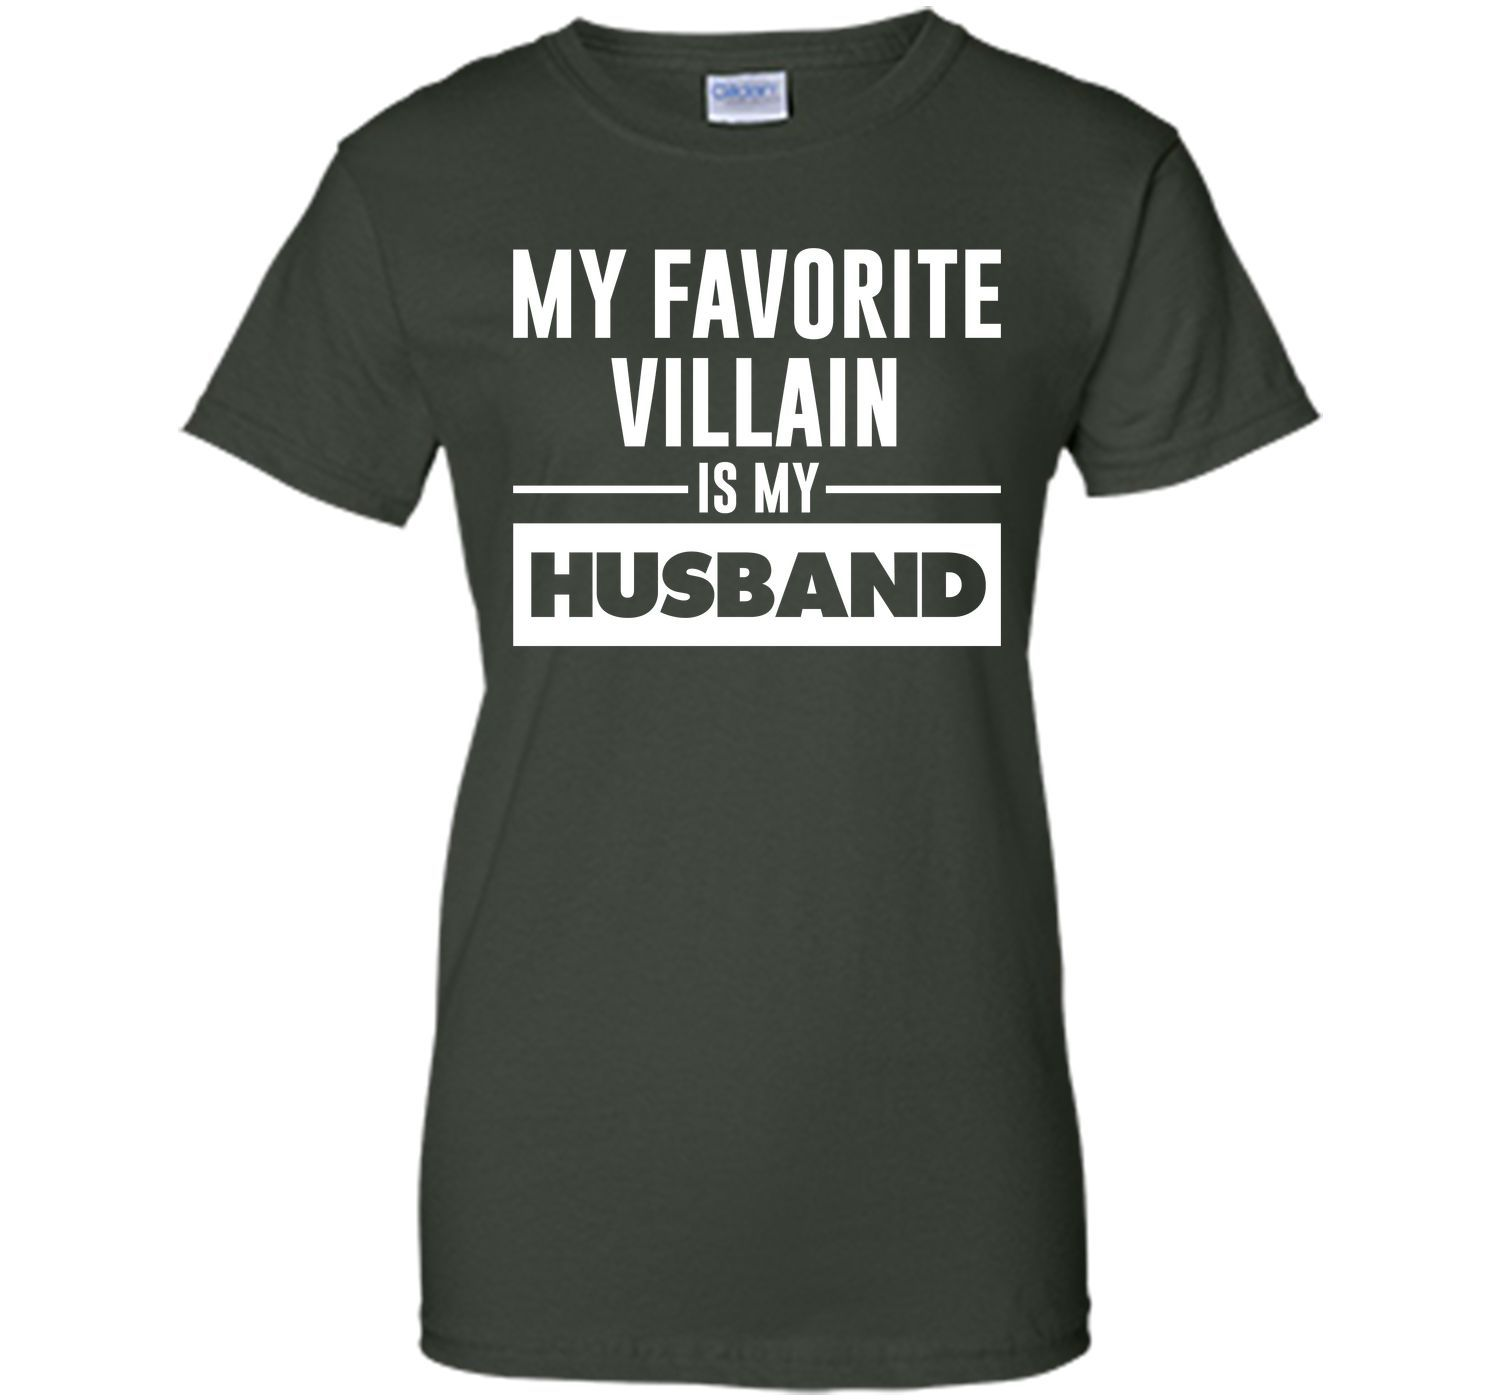 My Favorite Villain is My Husband Funny Graphic T-shirt T-Shirt